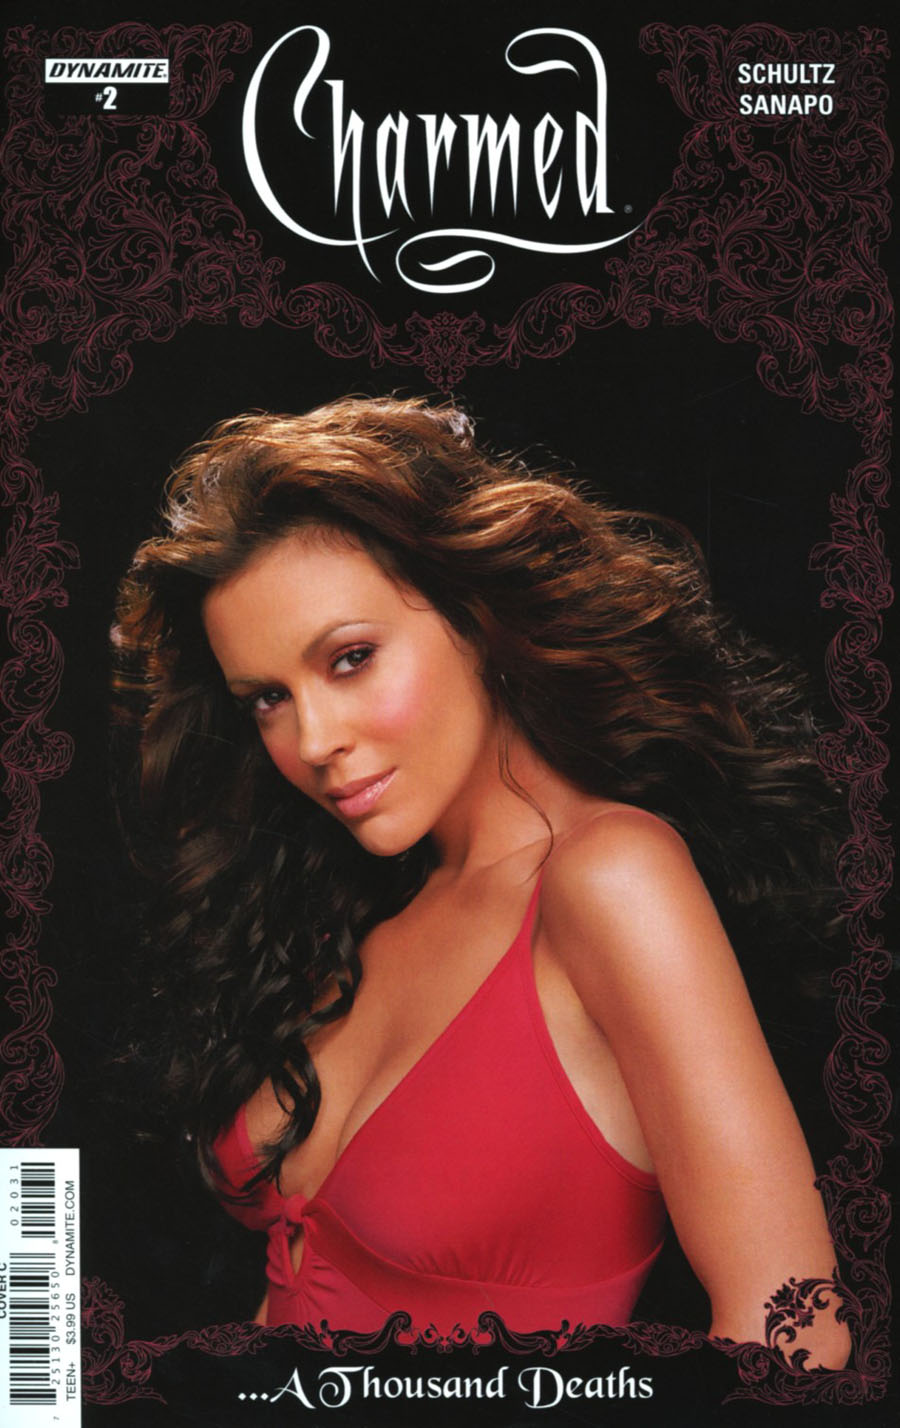 Charmed Vol 2 #2 Cover C Variant Phoebe Photo Cover